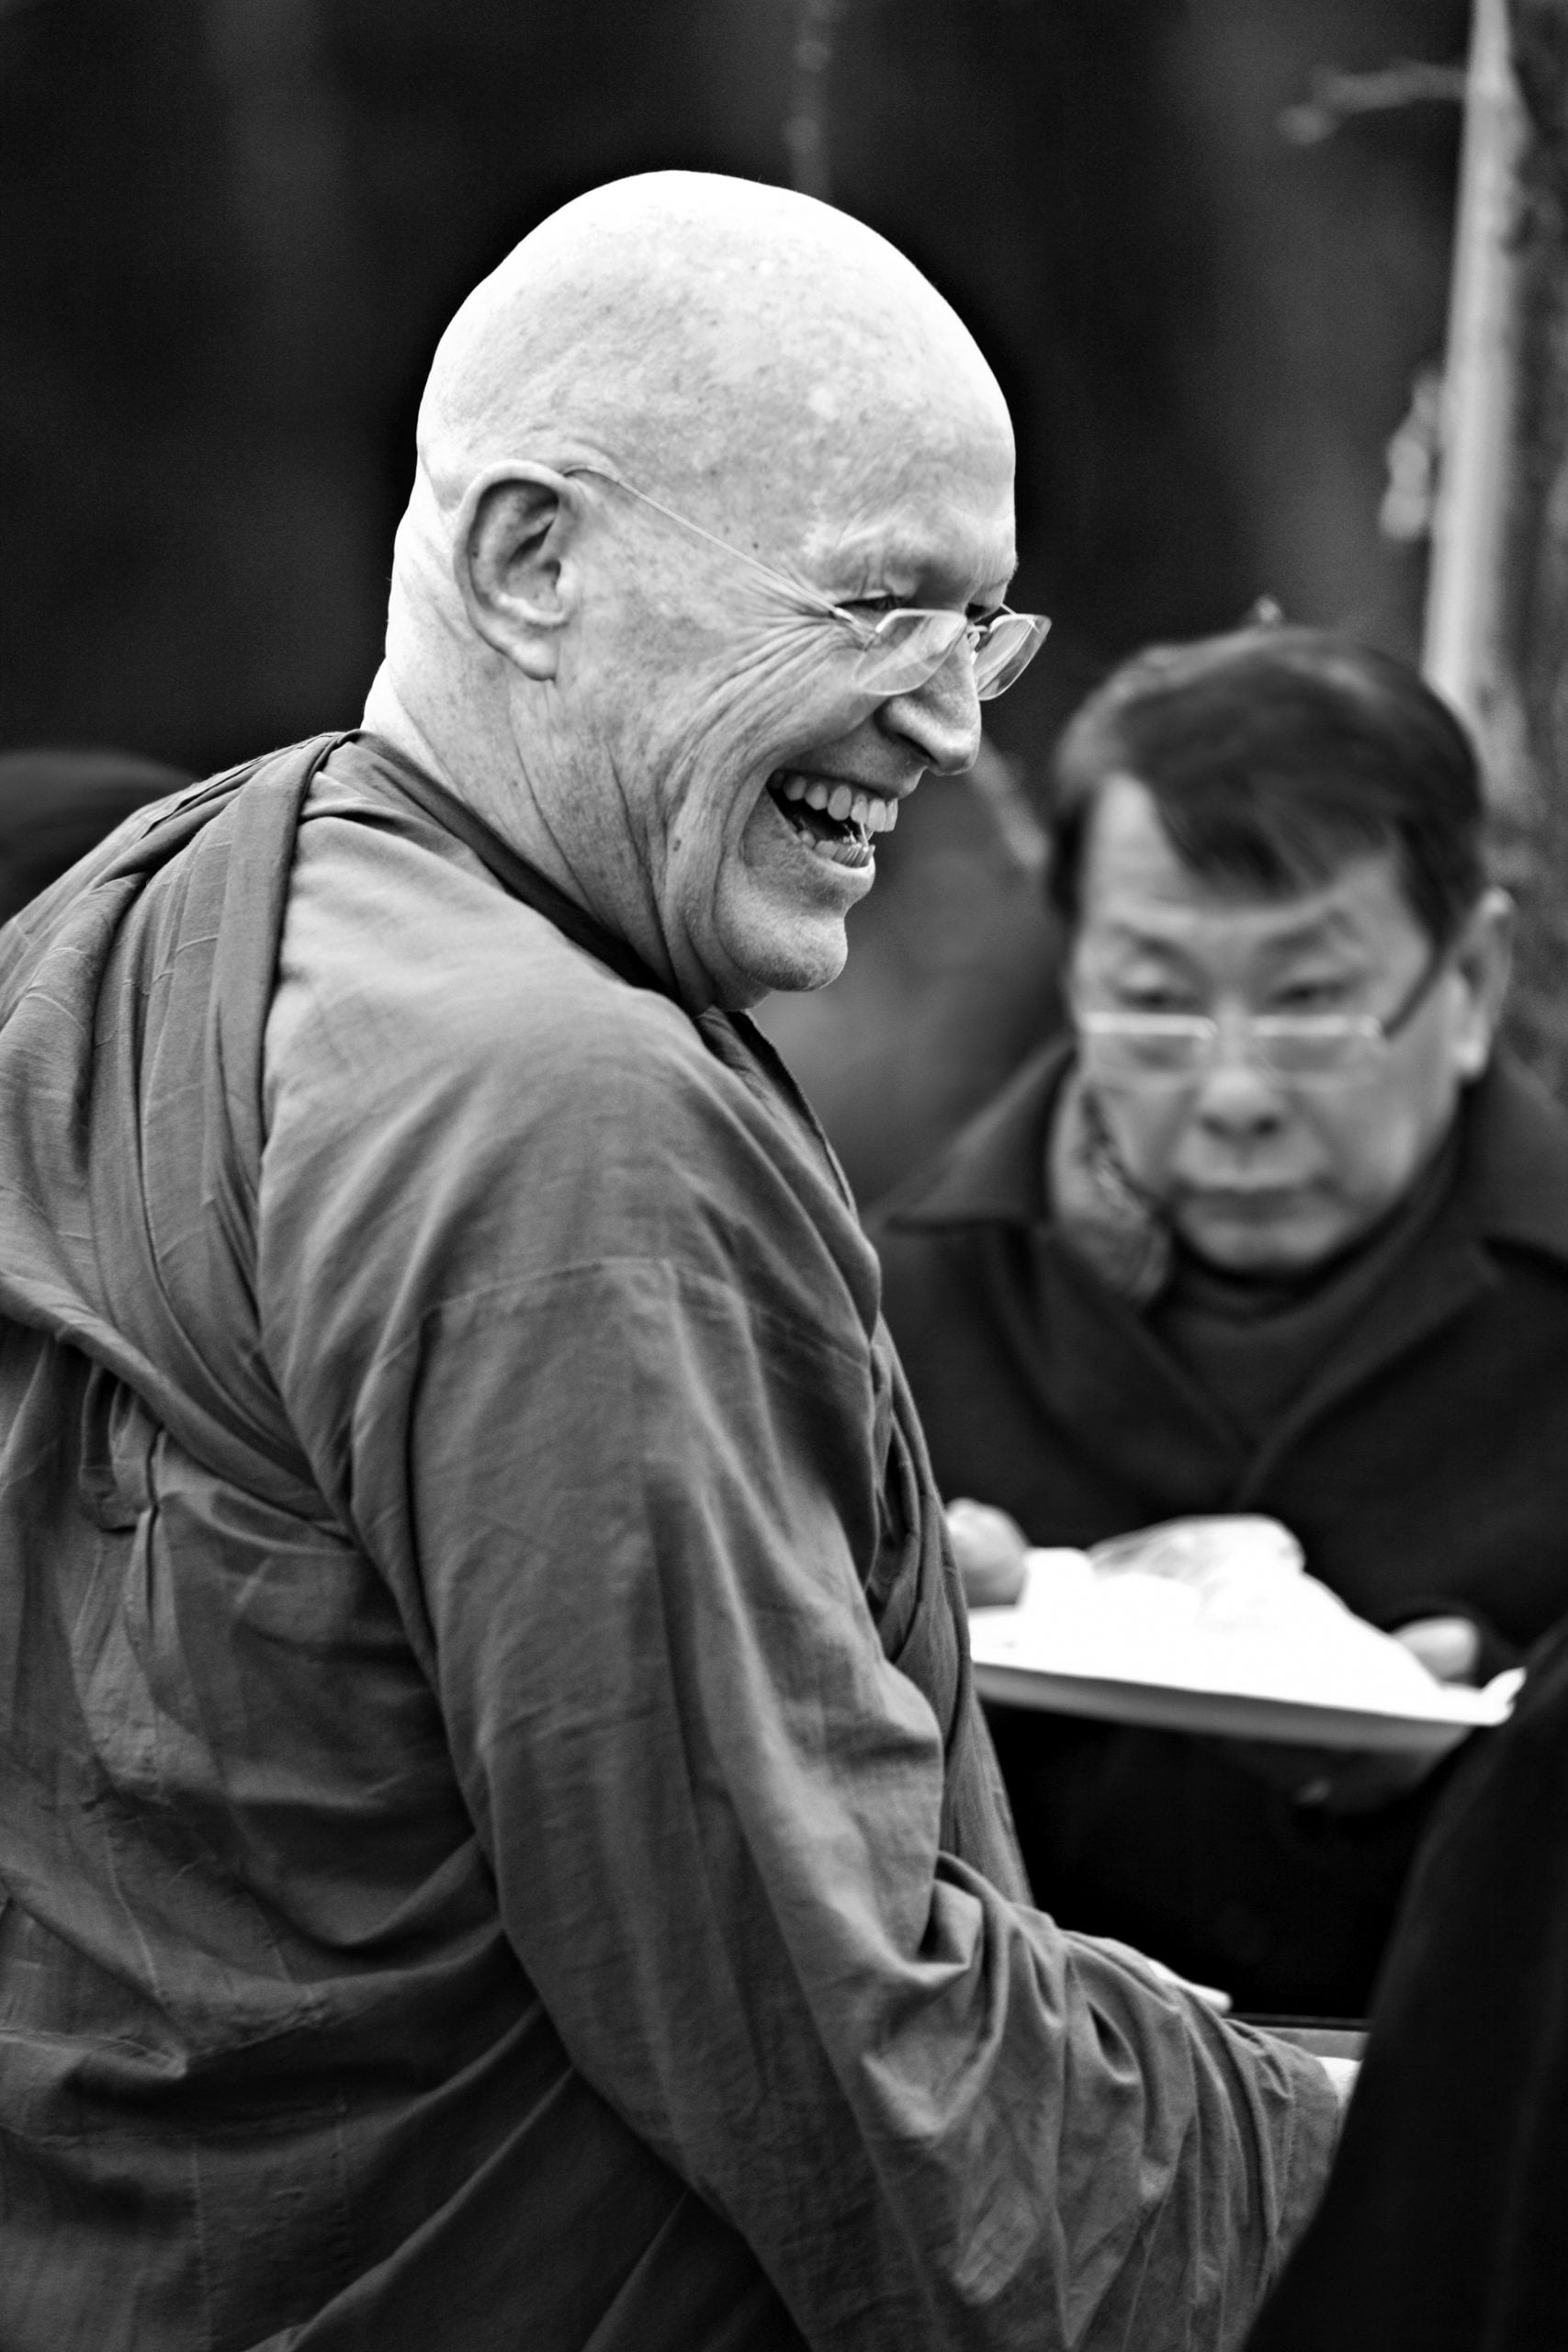 2010.11.14 Luang Por Sumedho's Last Kathina As The Abbot